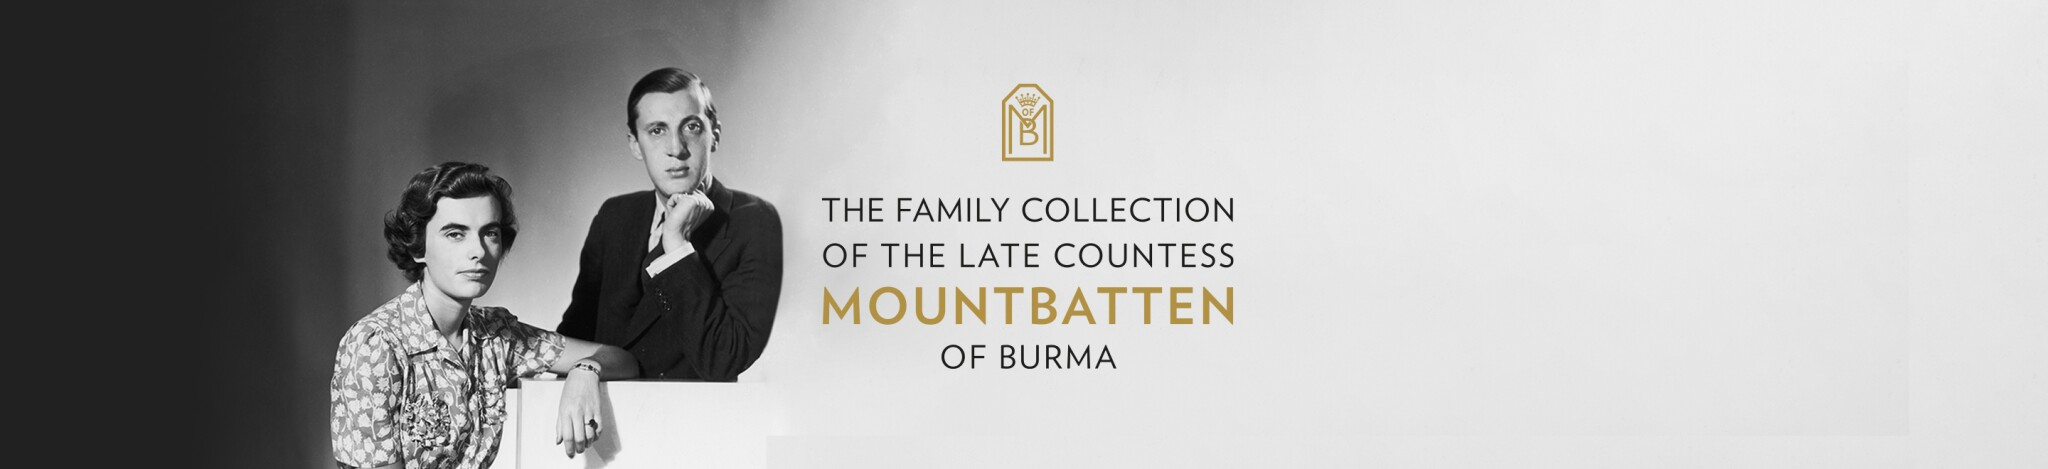 The Family Collection of the late Countess Mountbatten of Burma